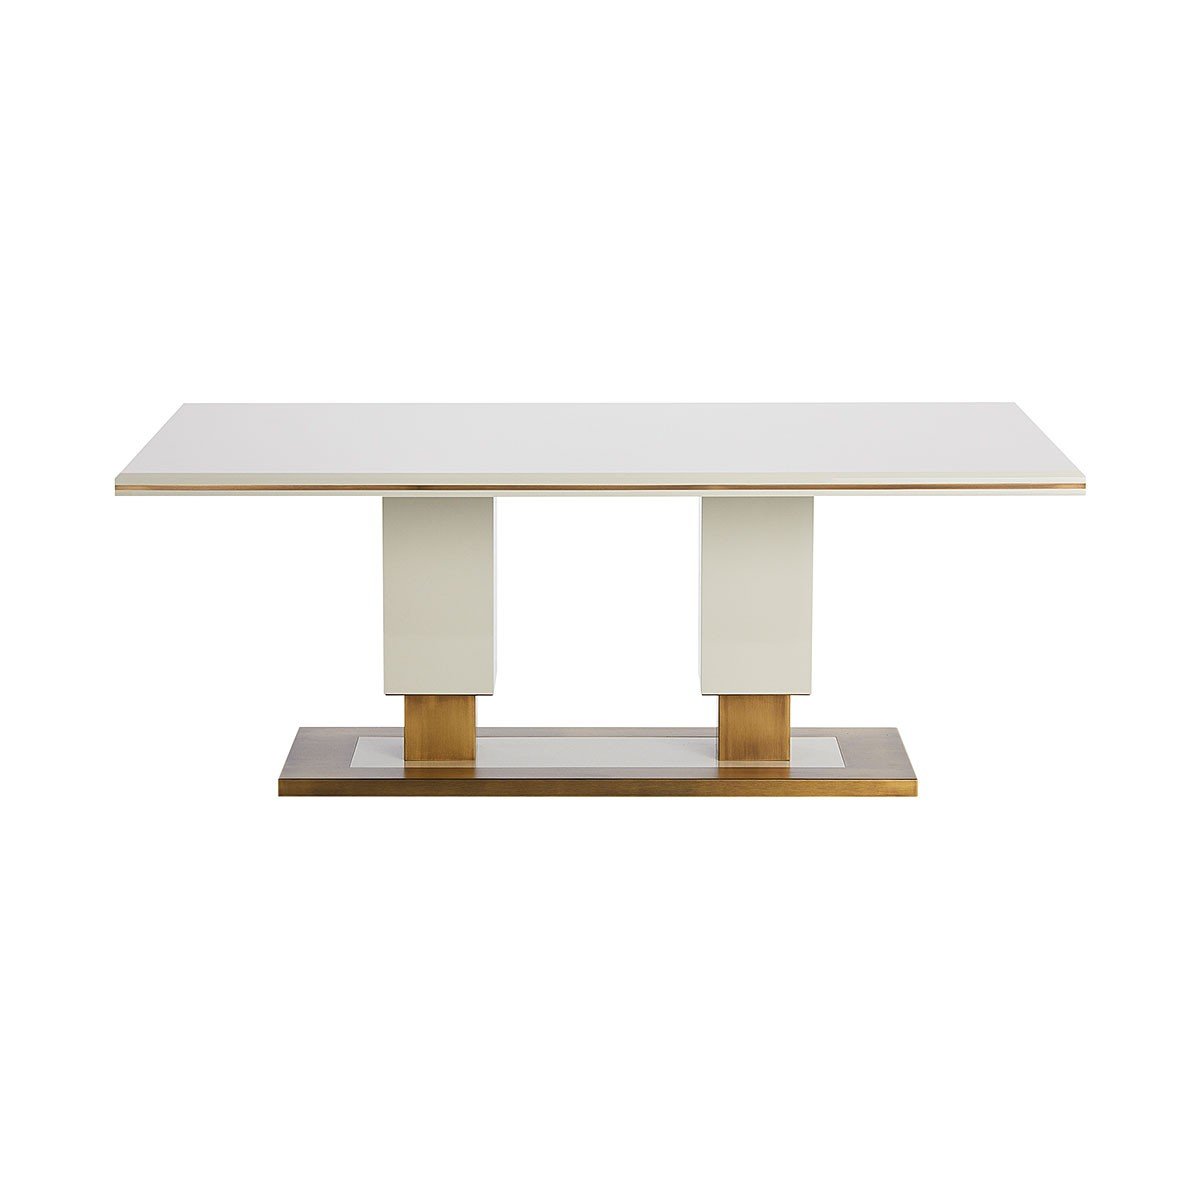 The Monty Dining Table